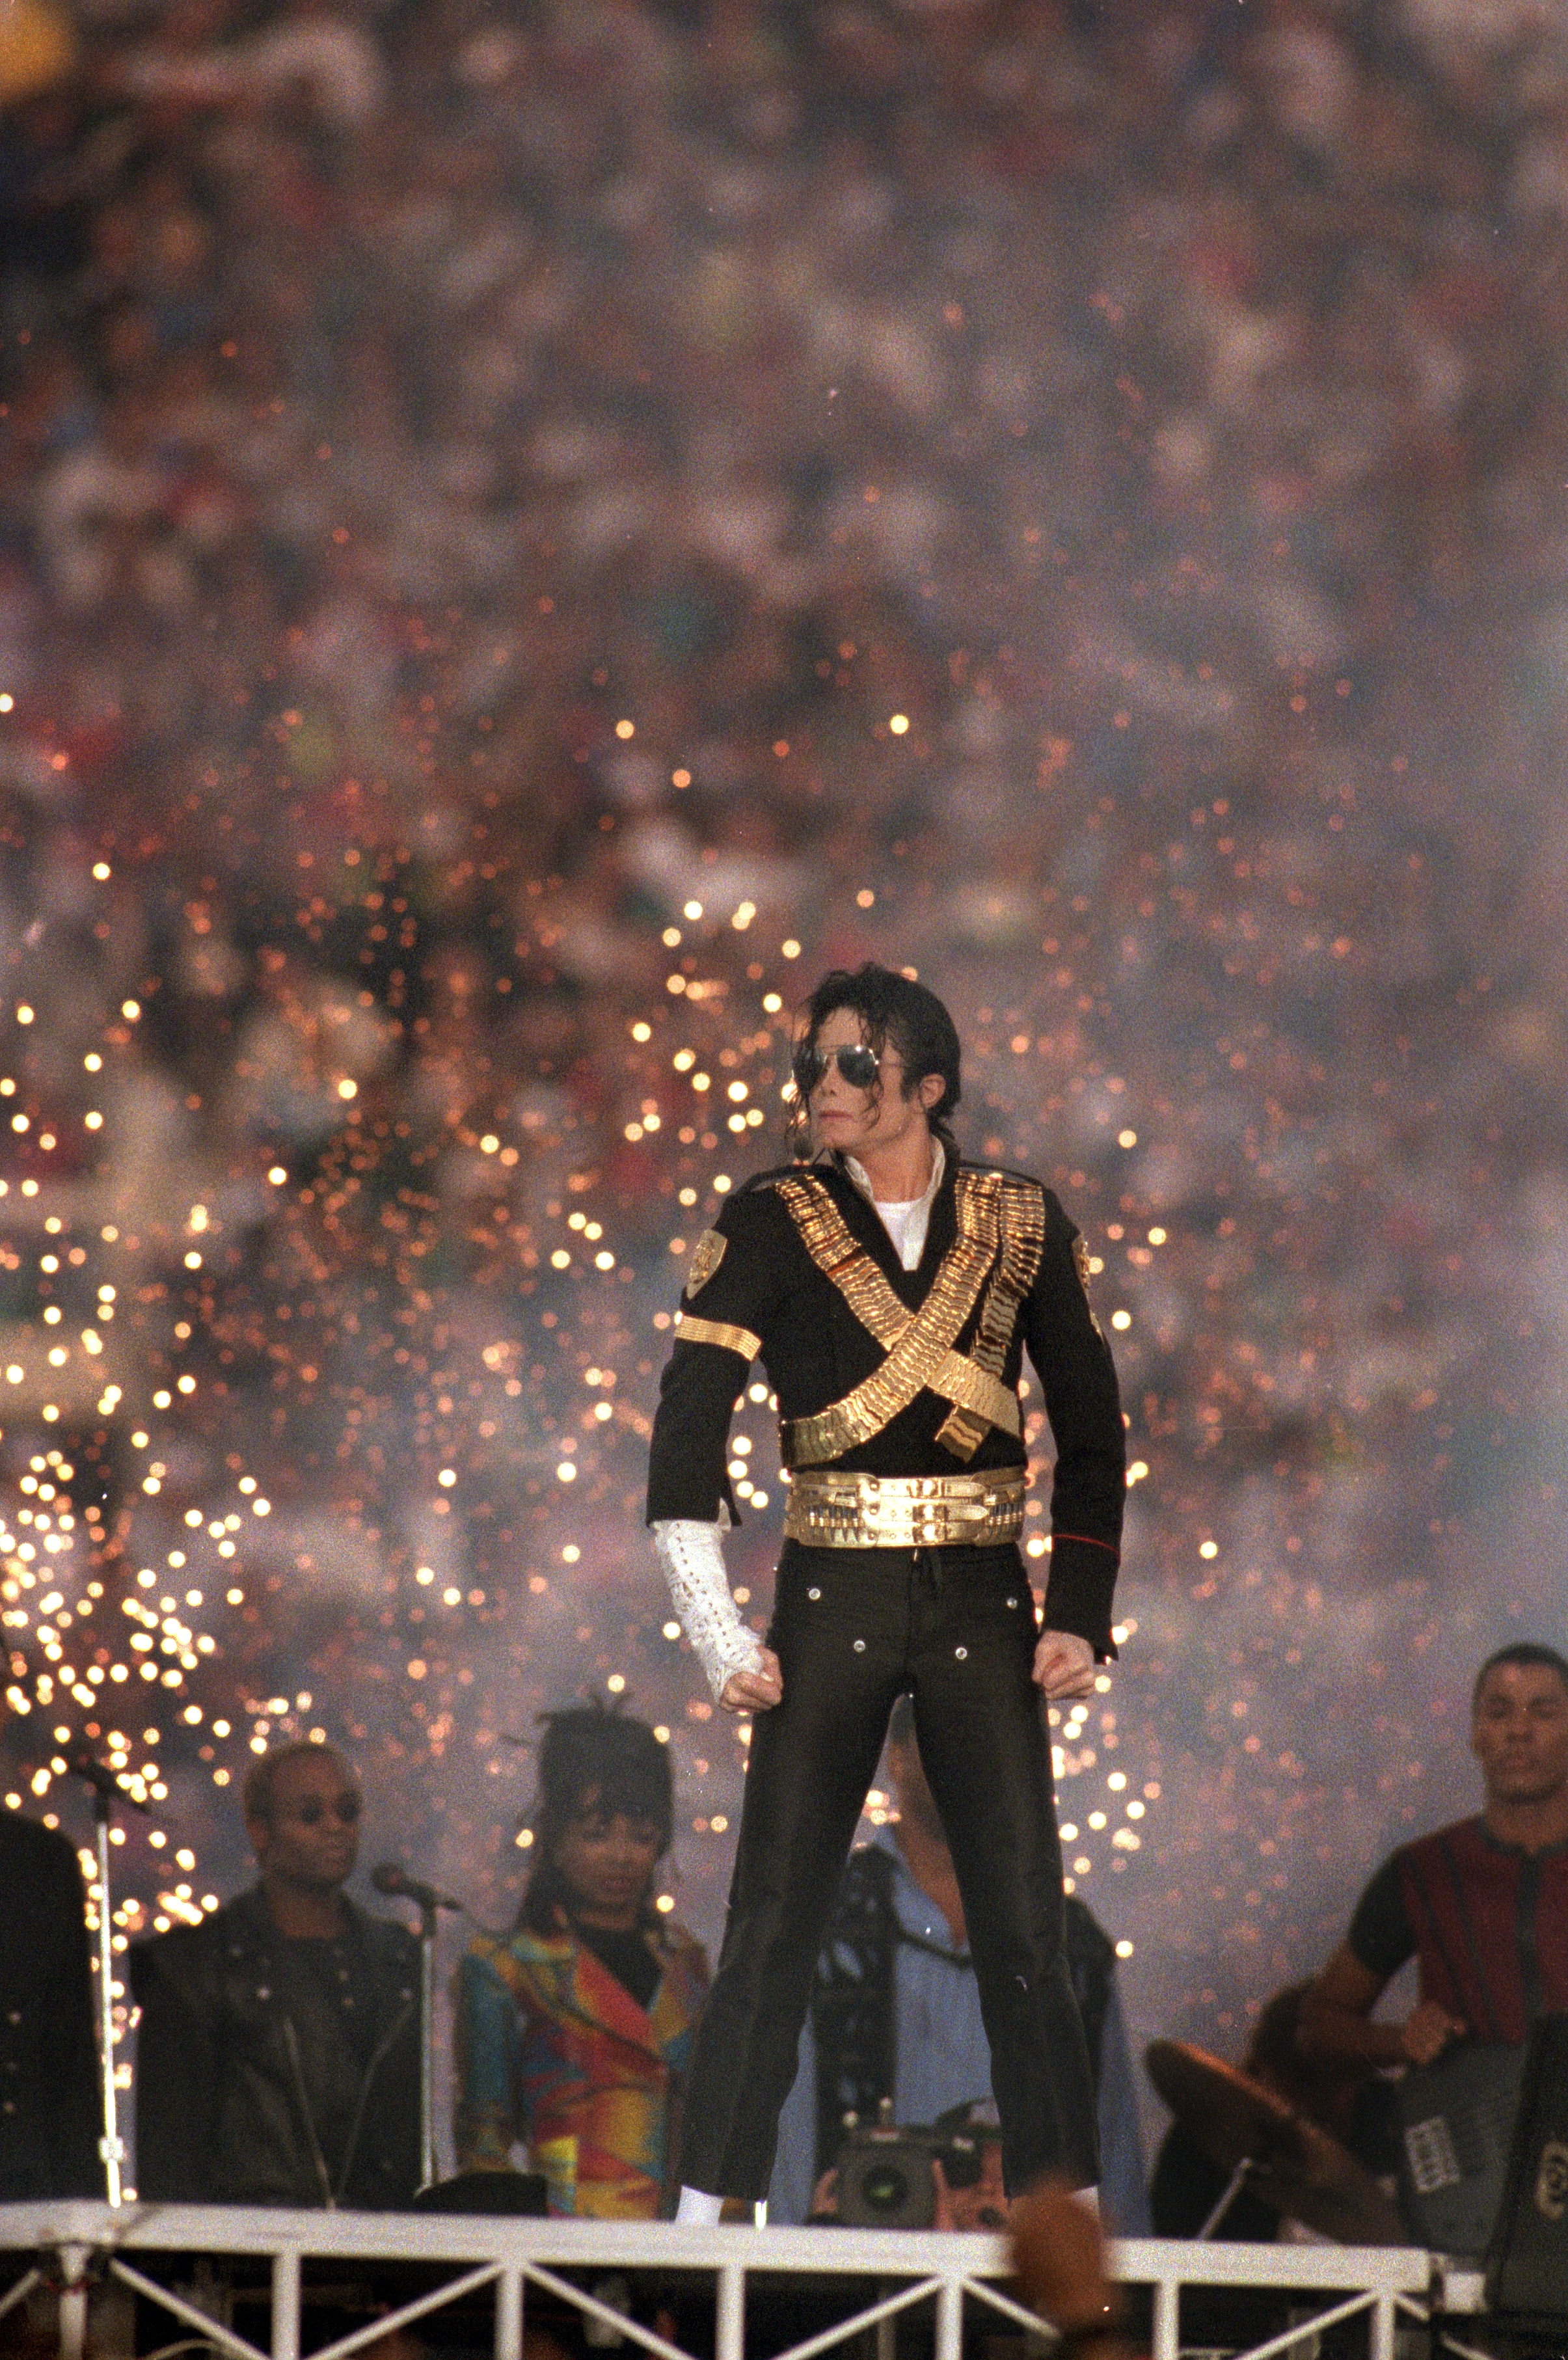 Michael Jackson performs during the Halftime show as the Dallas Cowboys take on the Buffalo Bills in Super Bowl XXVII at Rose Bowl on January 31, 1993, in Pasadena, California. (Photo by George Rose/Getty Images)